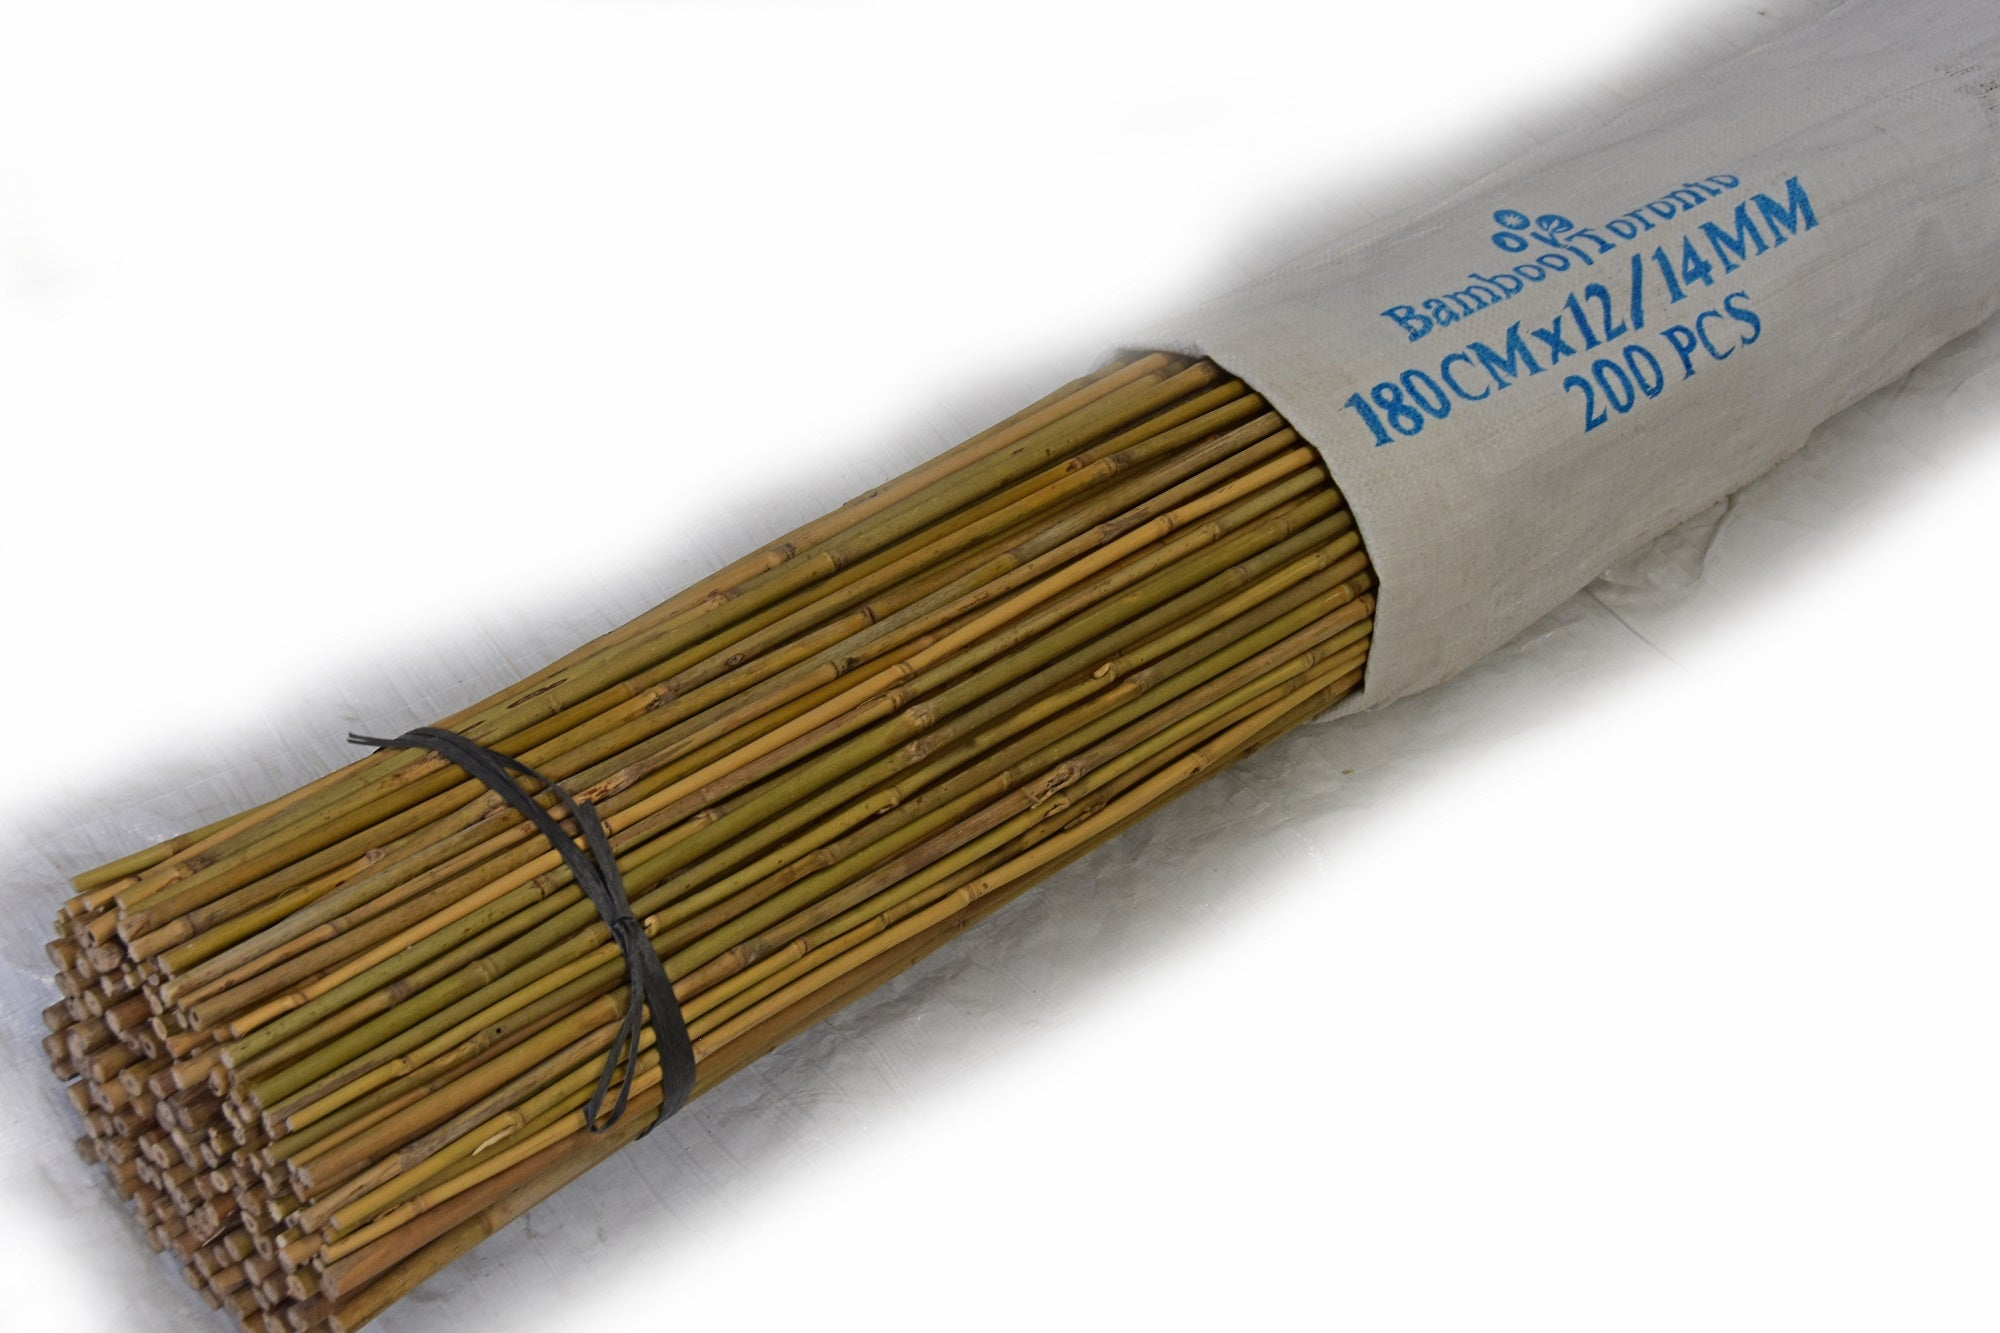 Tonkin Bamboo Pole 12-14mm x 6' Bundle of 200